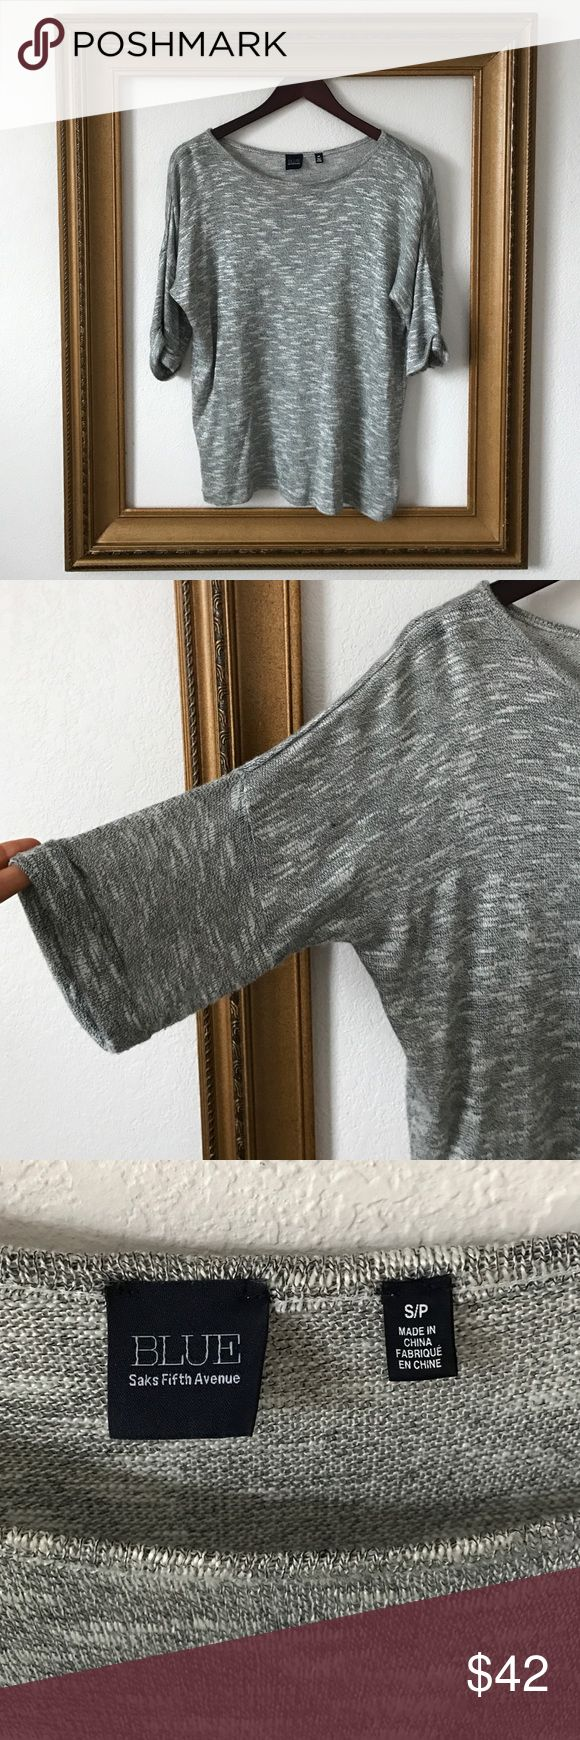 BLUE Saks Fifth Avenue grey slouchy top, S SO soft! Beautiful top, sleek, chic, gorgeous! In great condition. No signs of wear! Slight sheen. Saks Fifth Avenue Tops